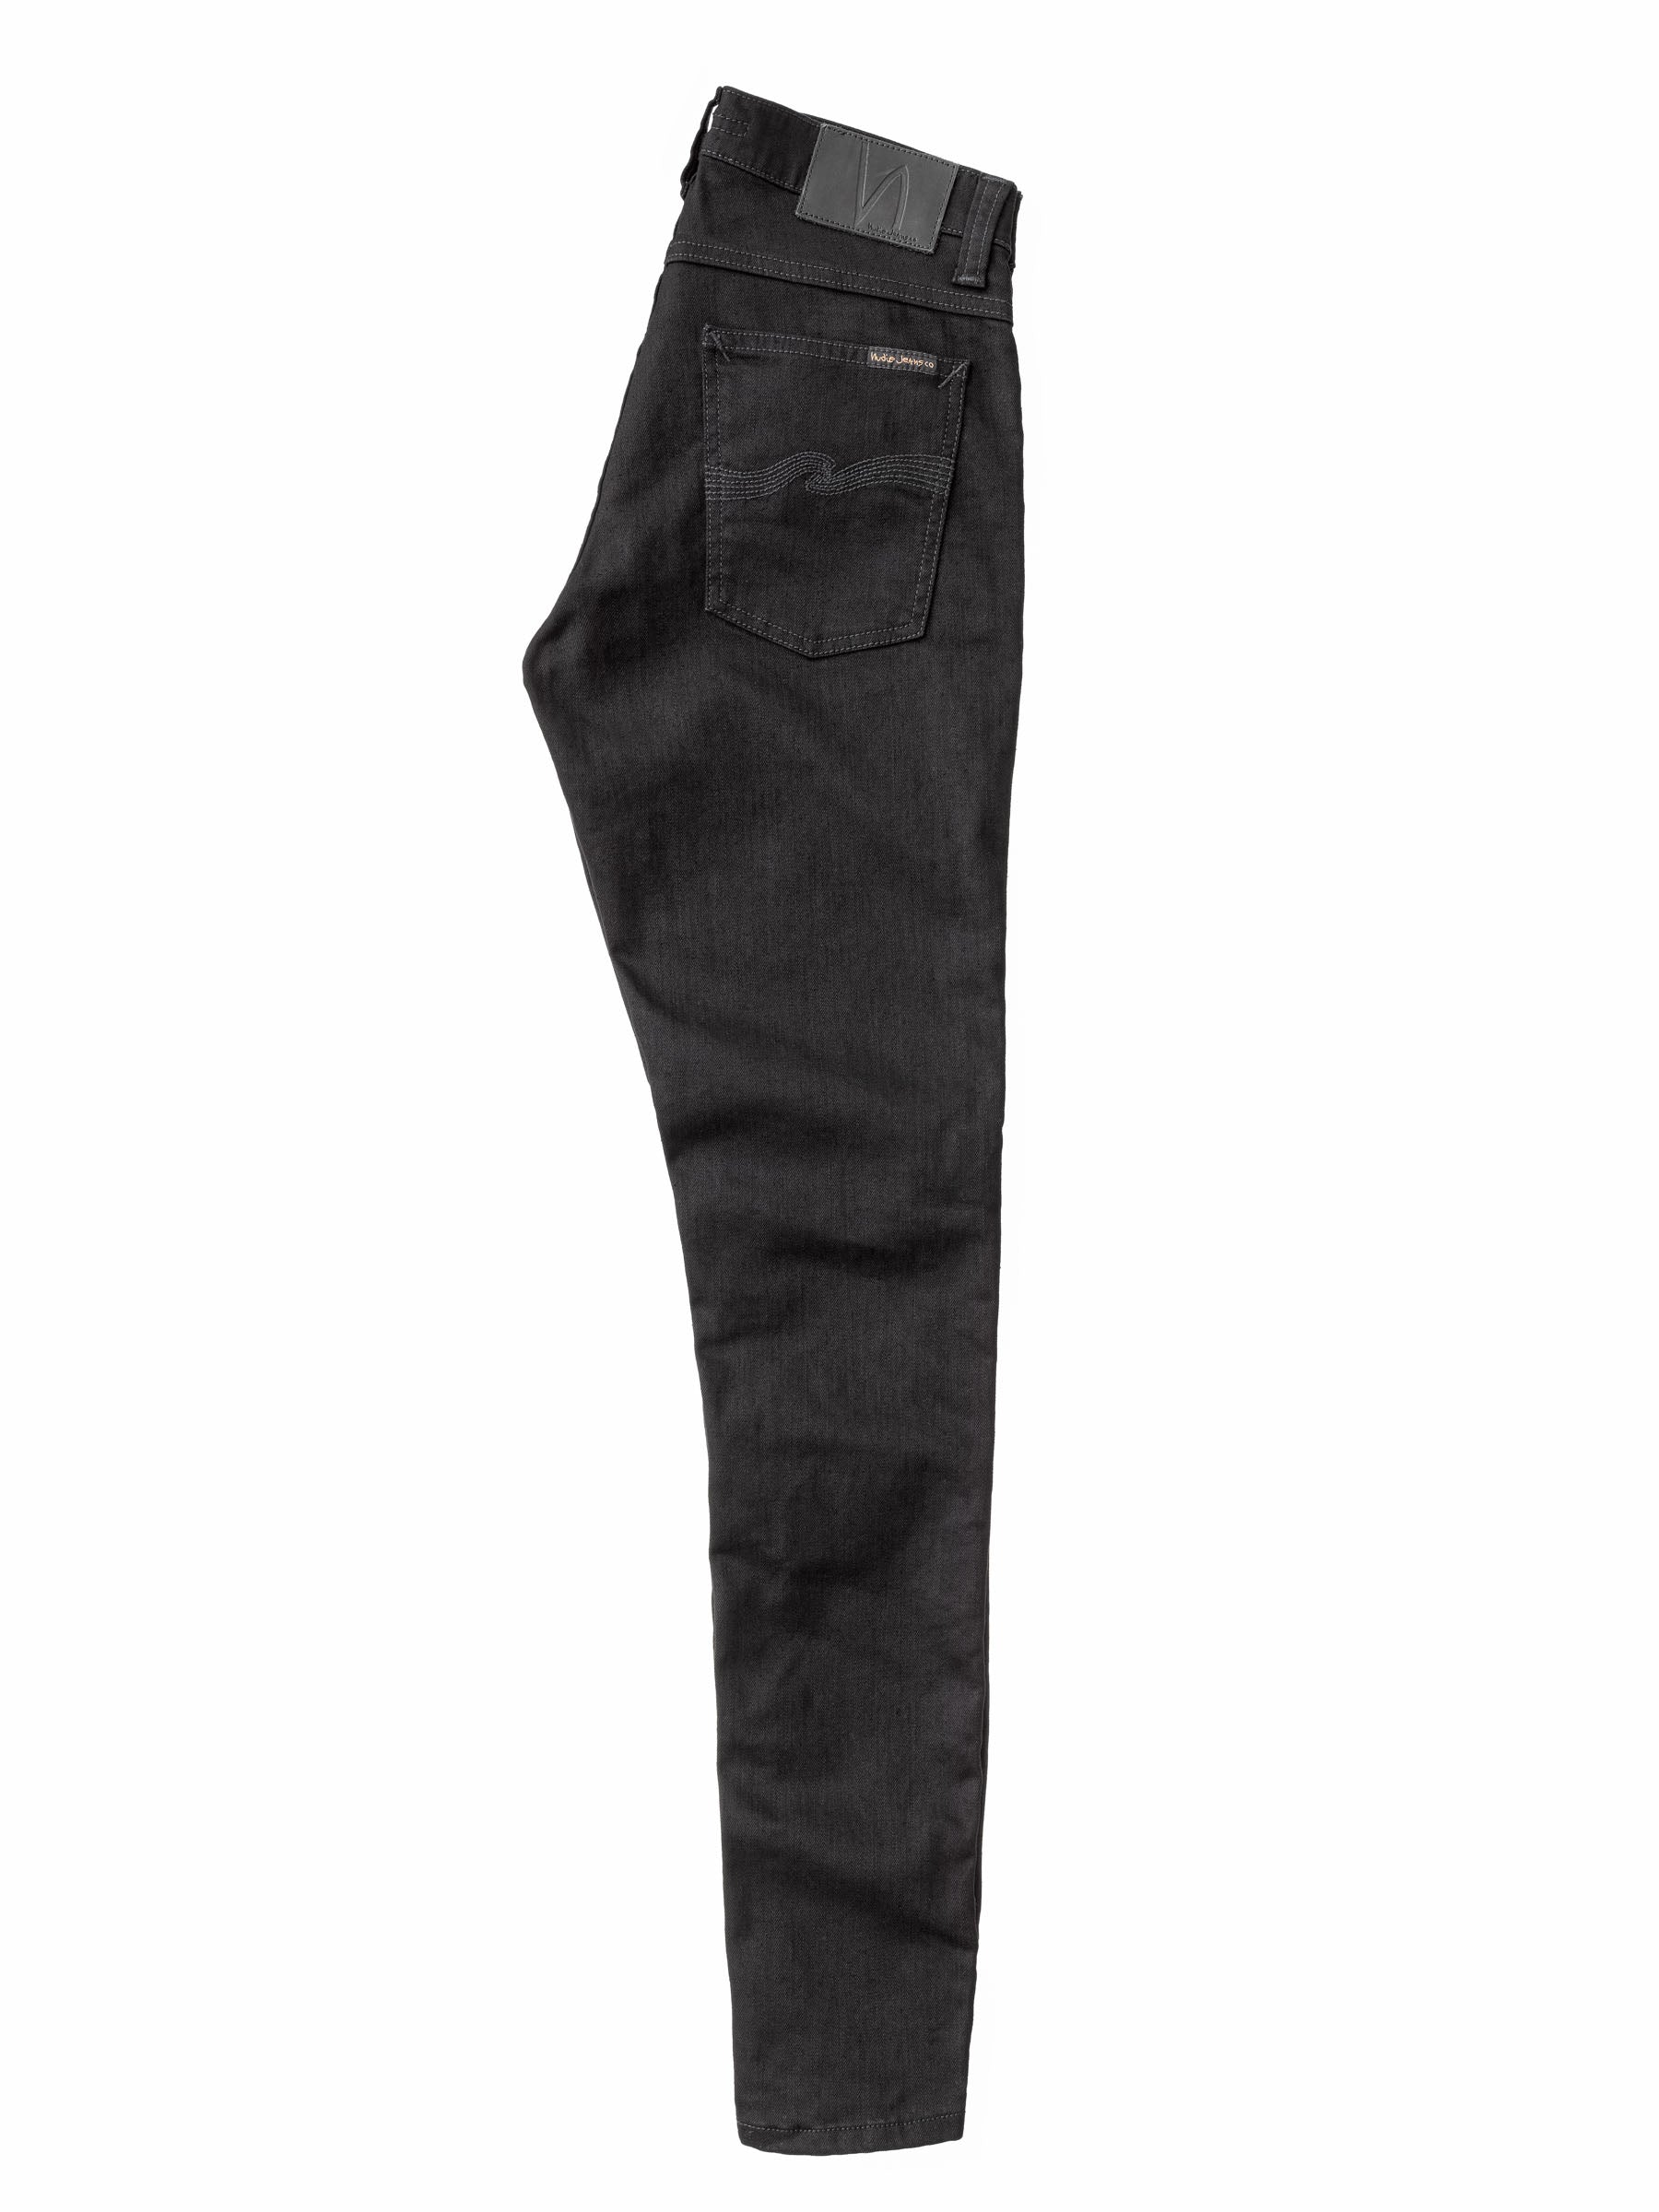 Jean skinny noir coton bio - tight terry - Nudie Jeans num 3